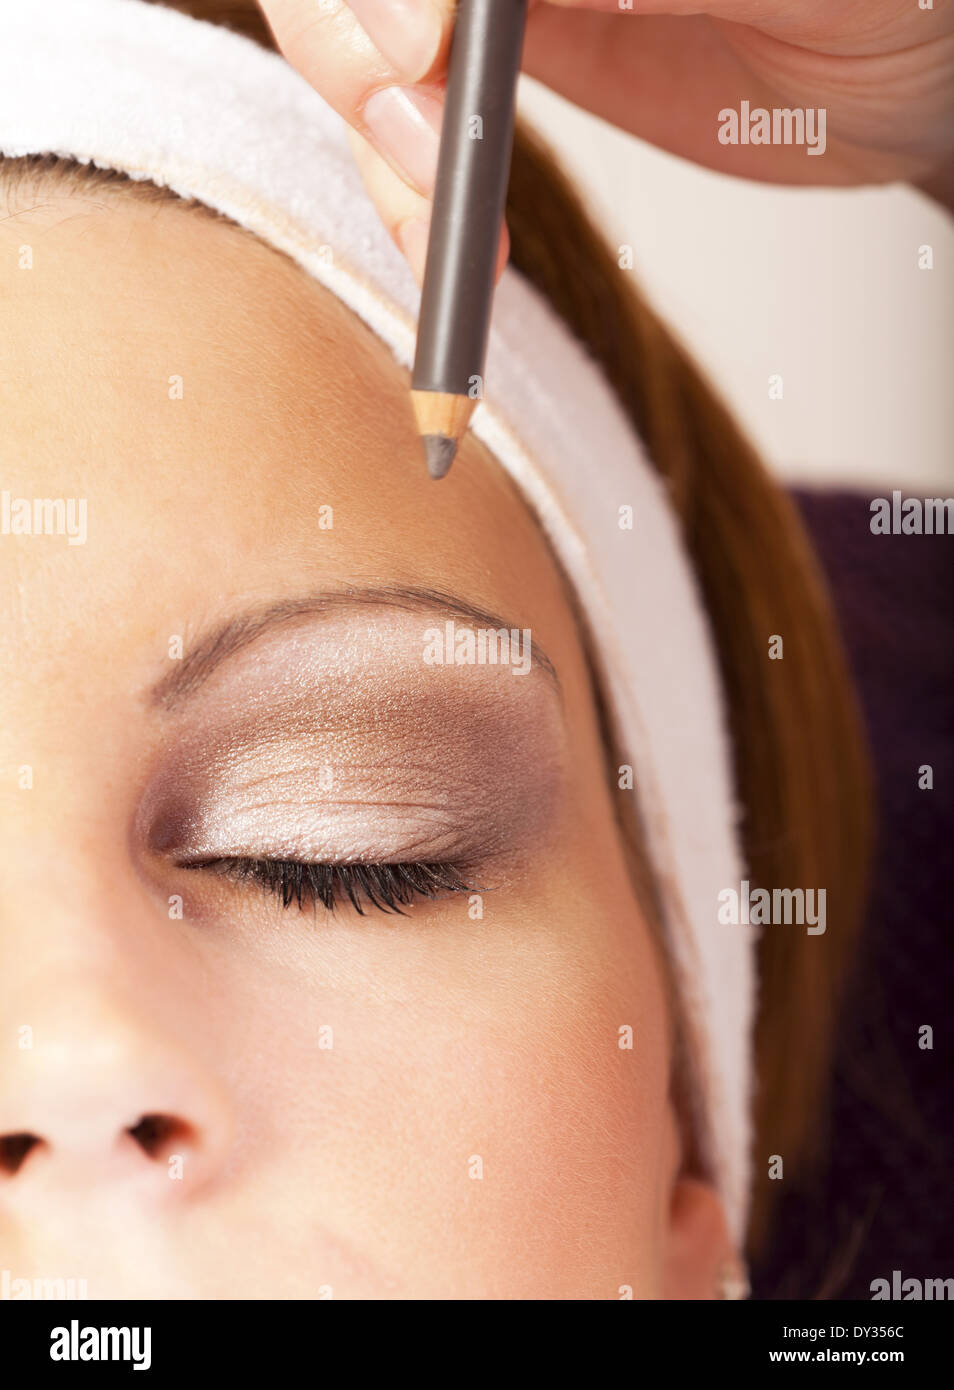 Woman Eyebrows Pencil Stock Photos Woman Eyebrows Pencil Stock